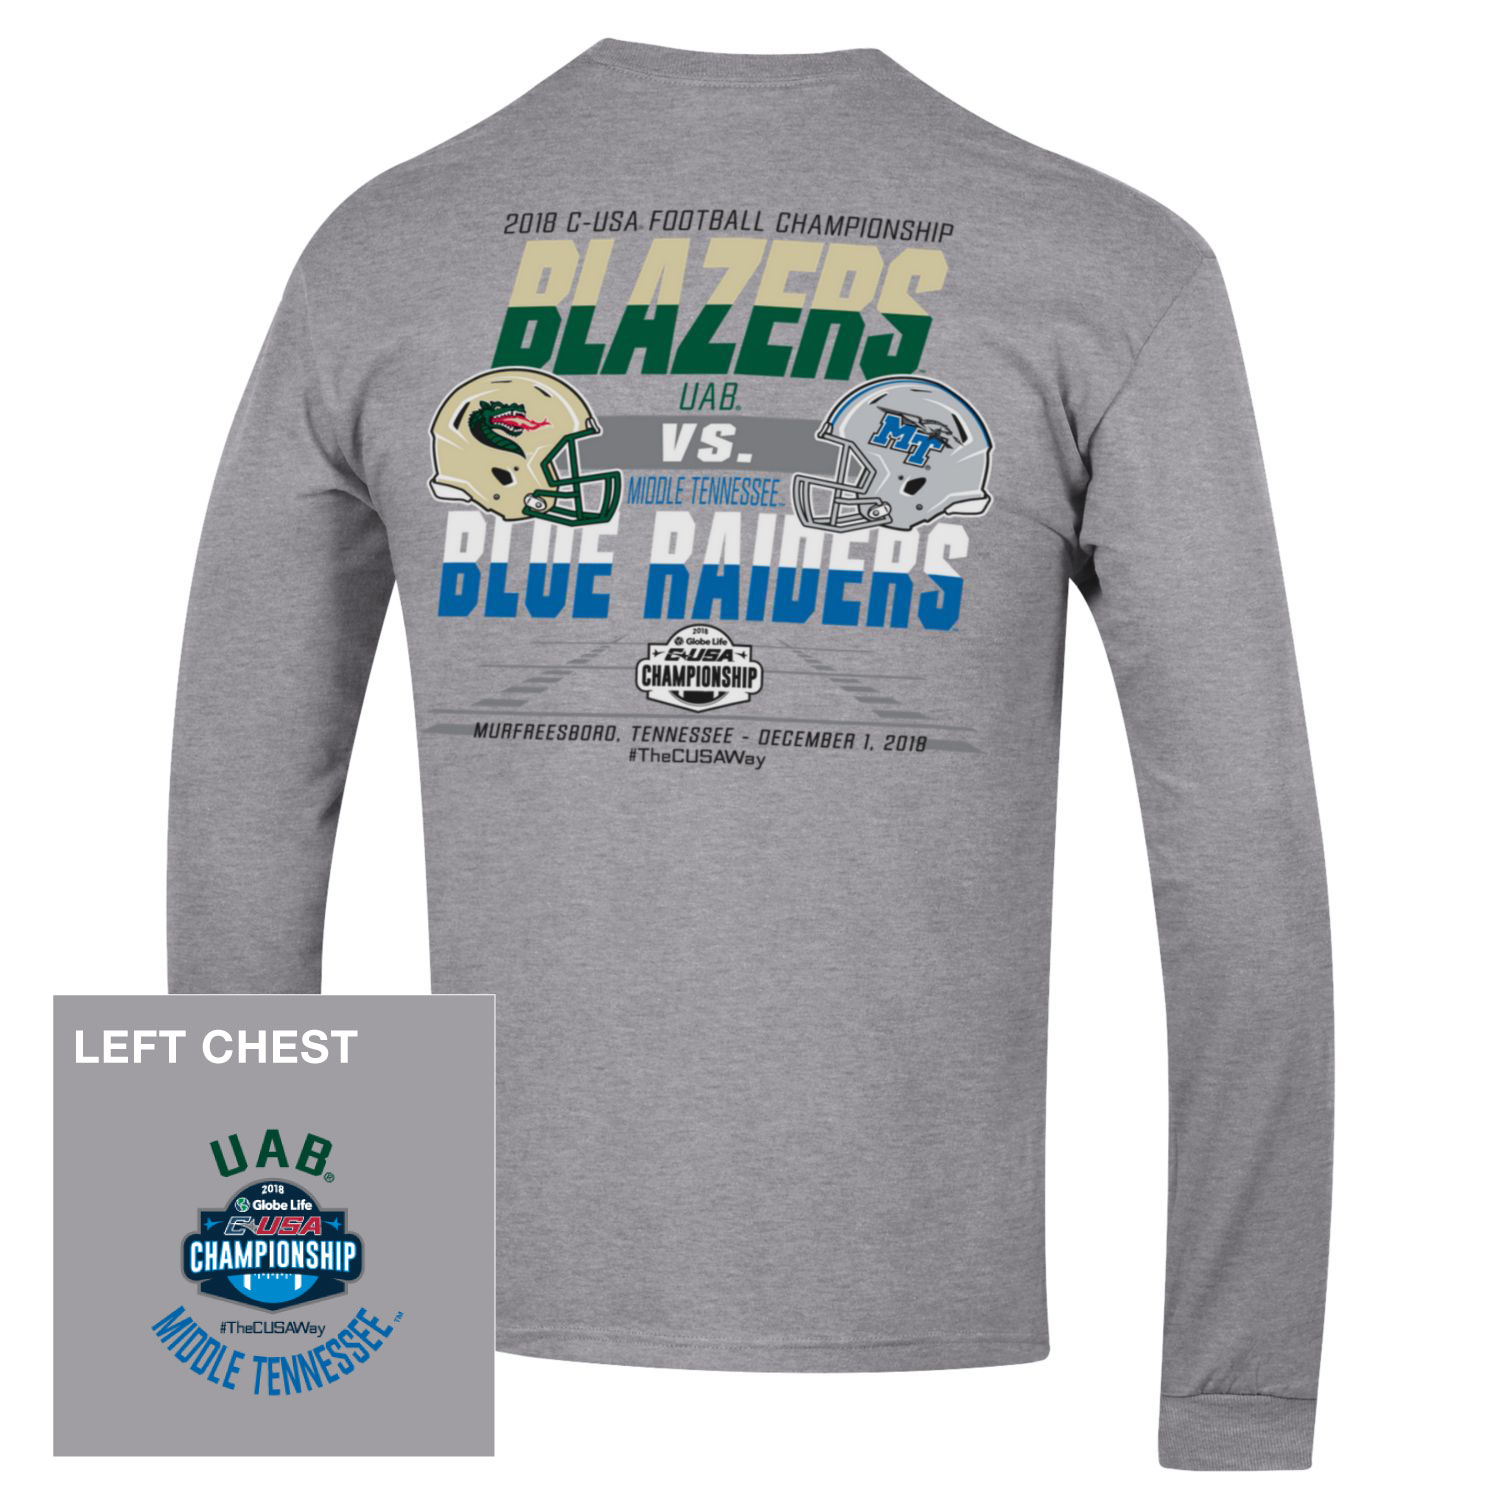 Blazers vs. Blue Raiders C-USA Long Sleeve Shirt